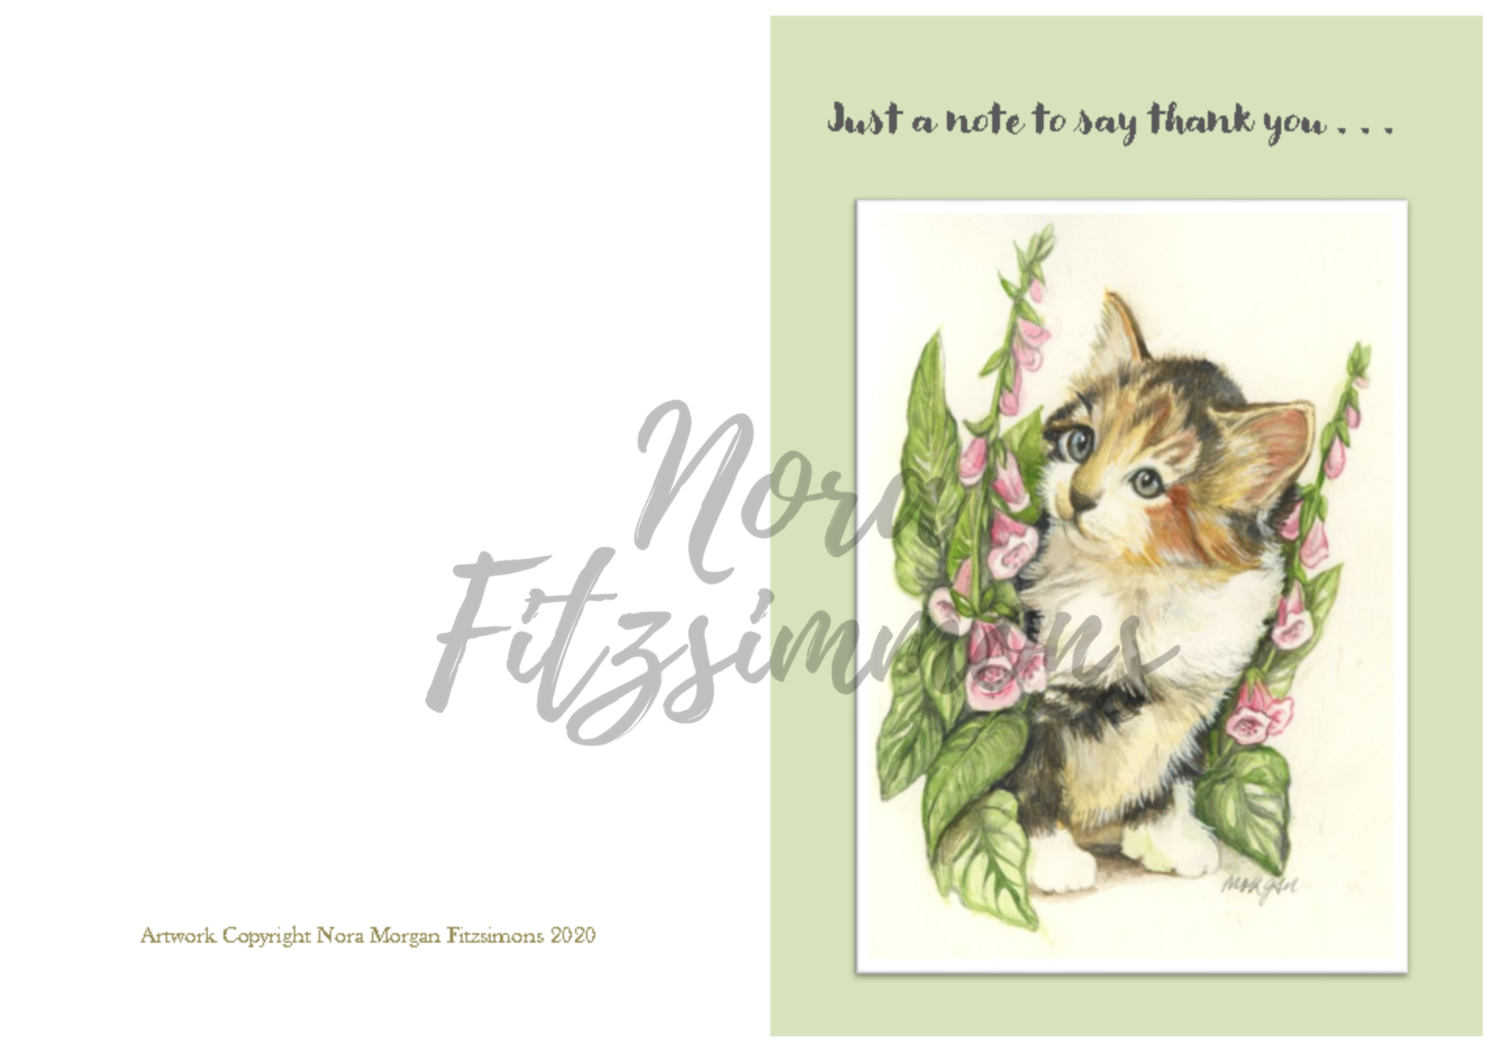 Just a note to say Thank You - Faith Card